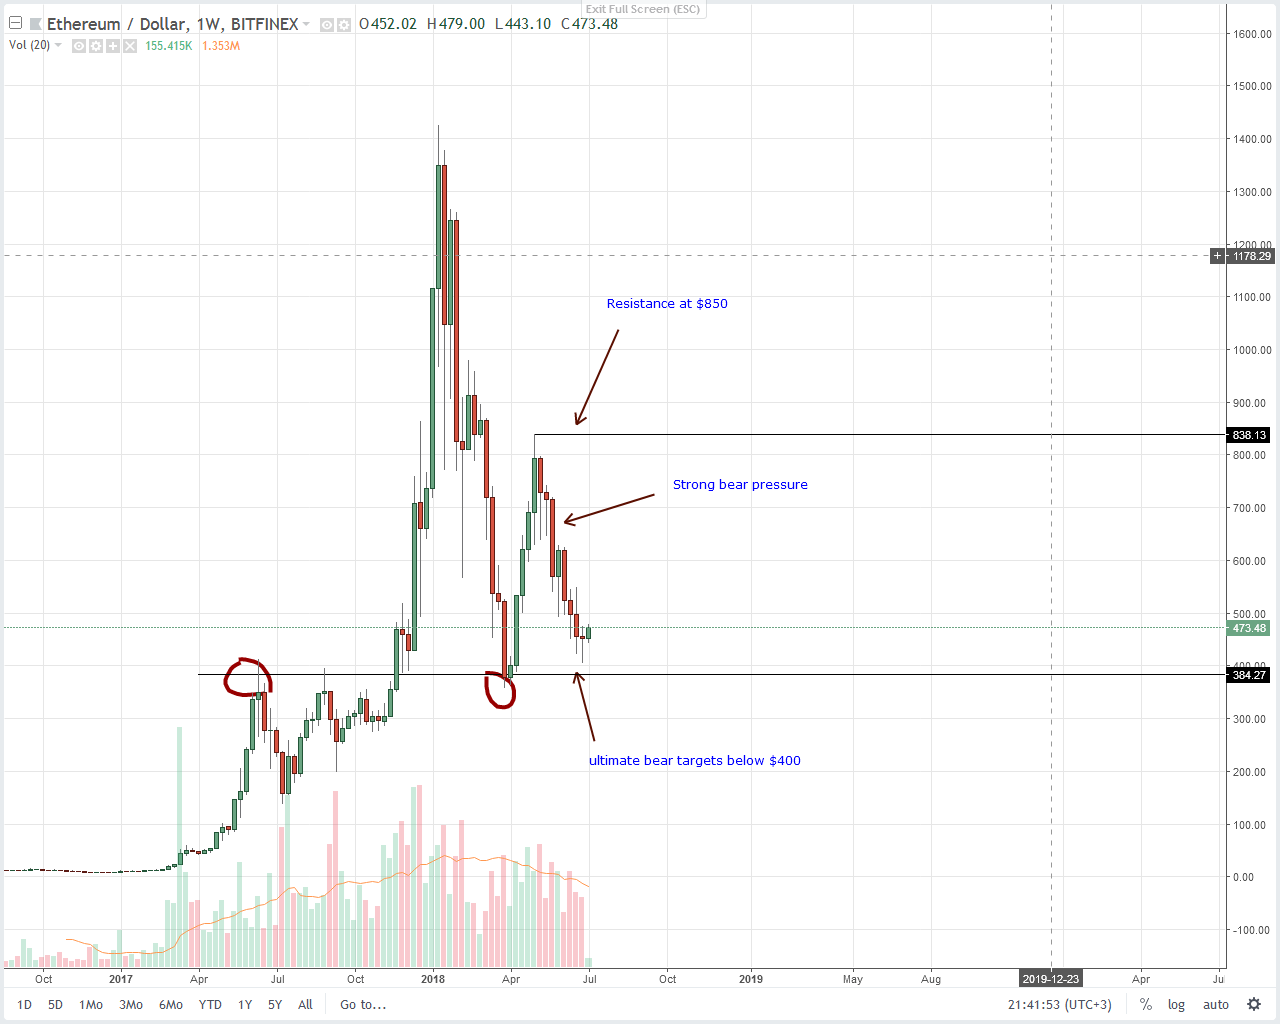 Ethereum Daily Chart by Trading View